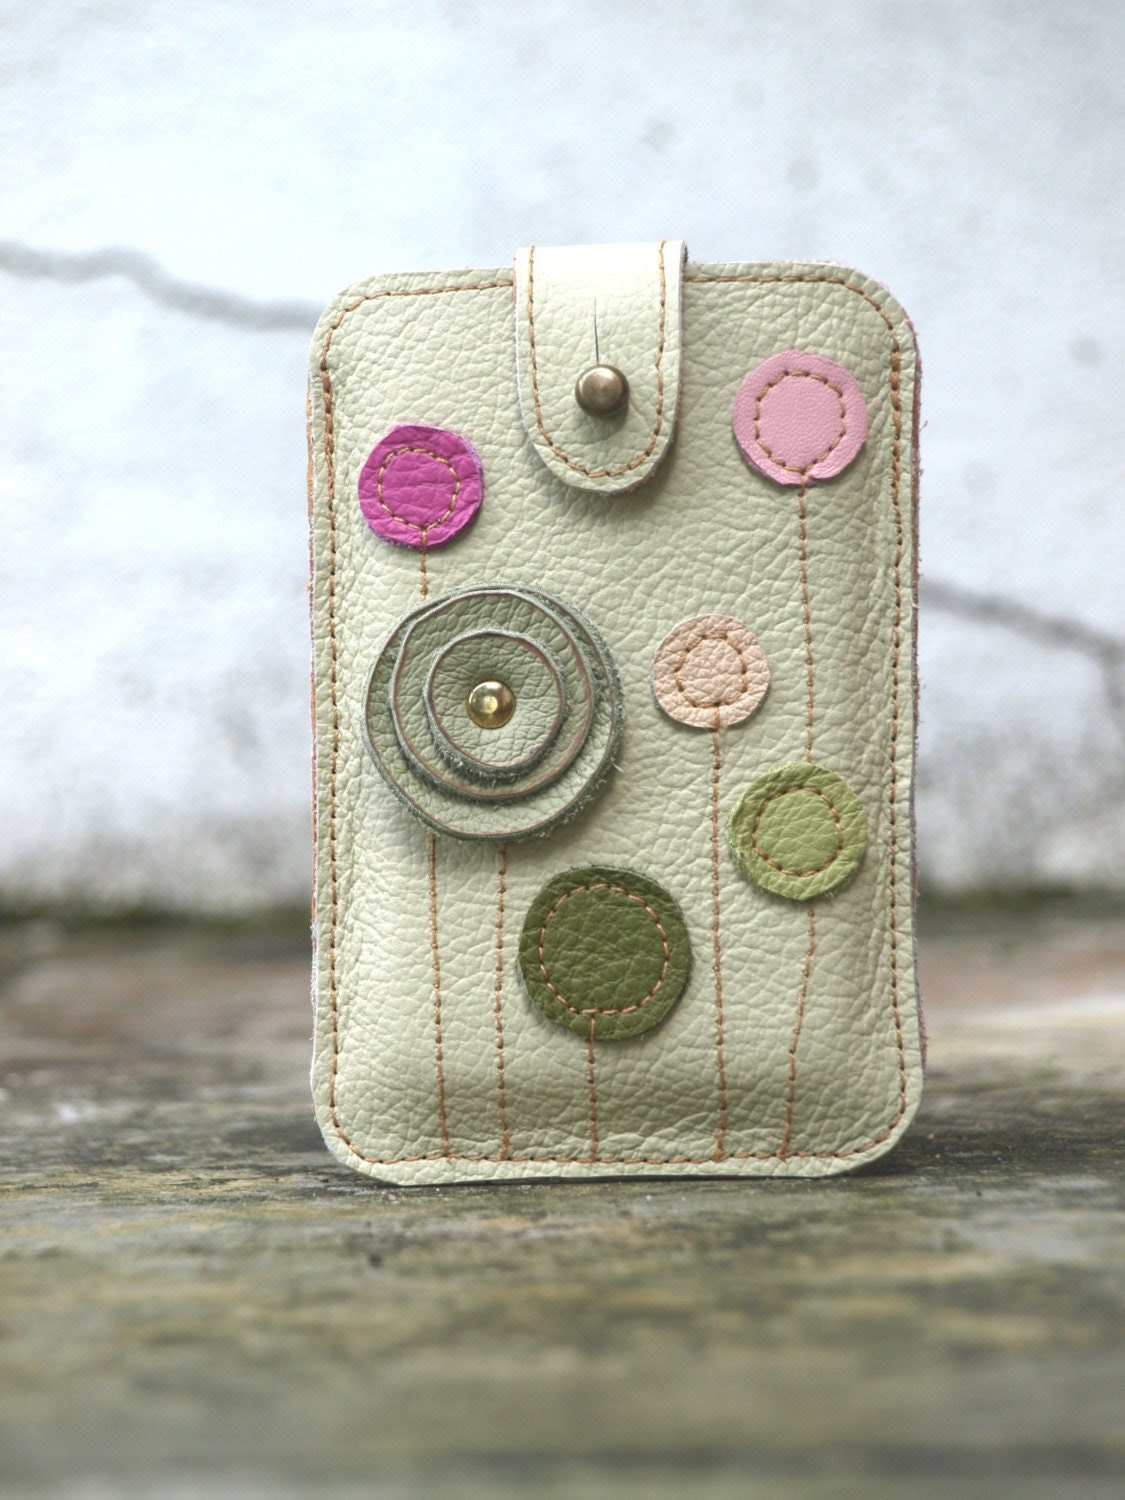 Black Friday Cyber Monday iPhone iTouch  HTC Case . Pastel Leather Floral Applique